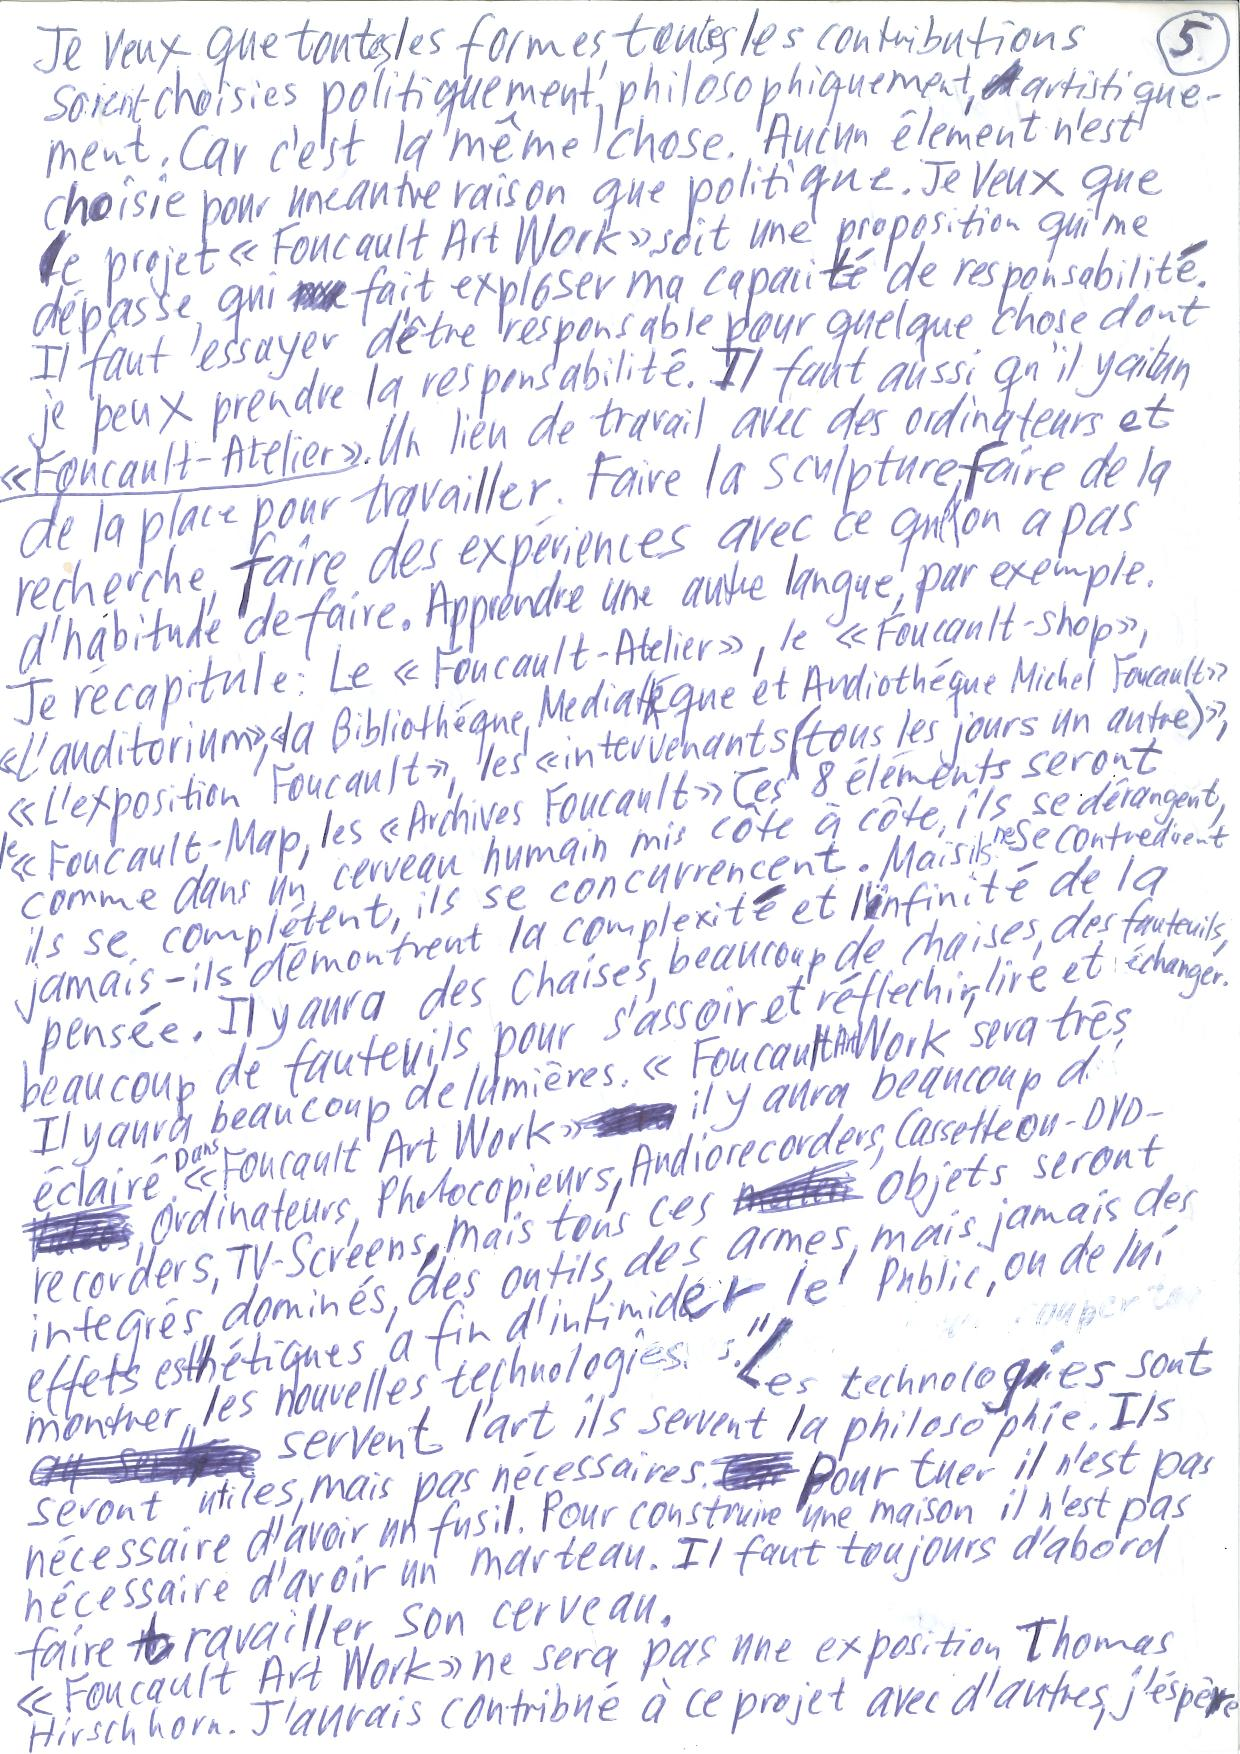 24H-Foucault_Note d'intention_2004 (6)